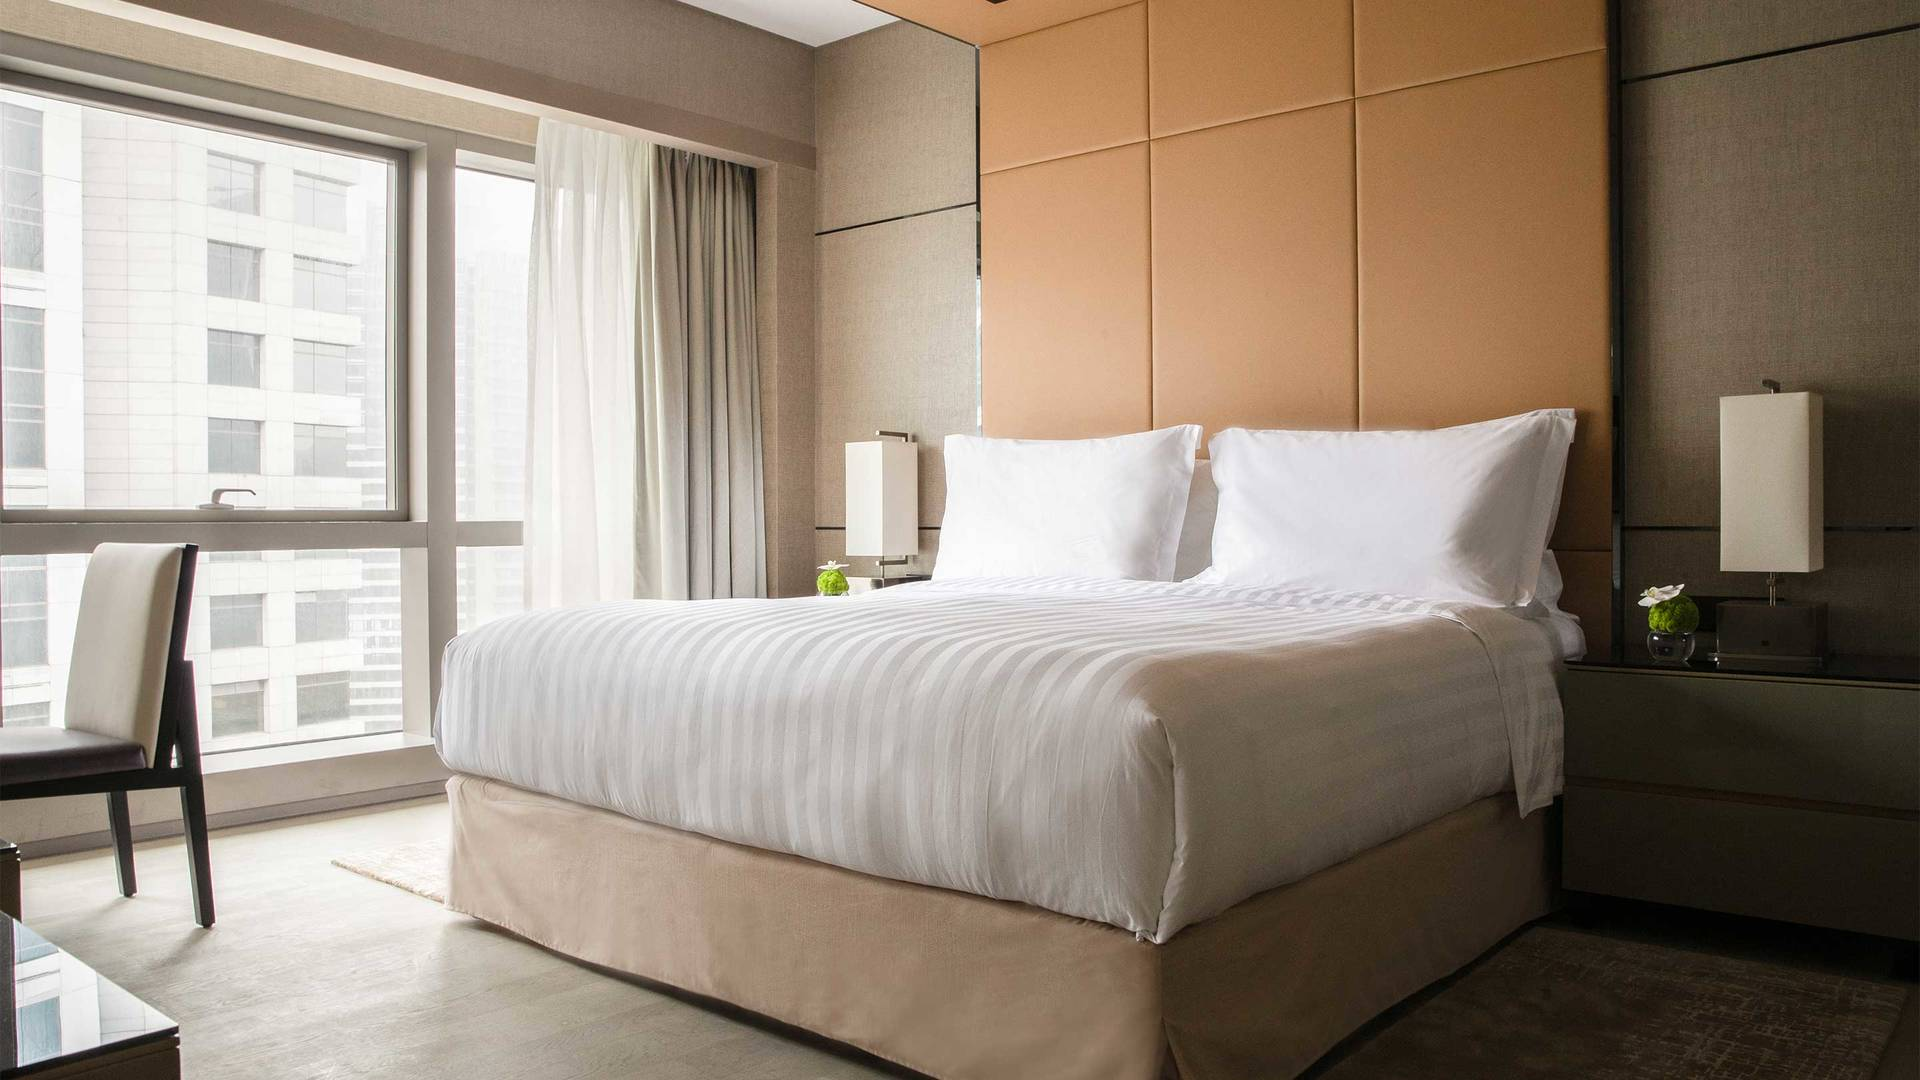 16-9 JUMEIRAH LIVING GUANGZHOU Contemporary 2 bed room suite bed room